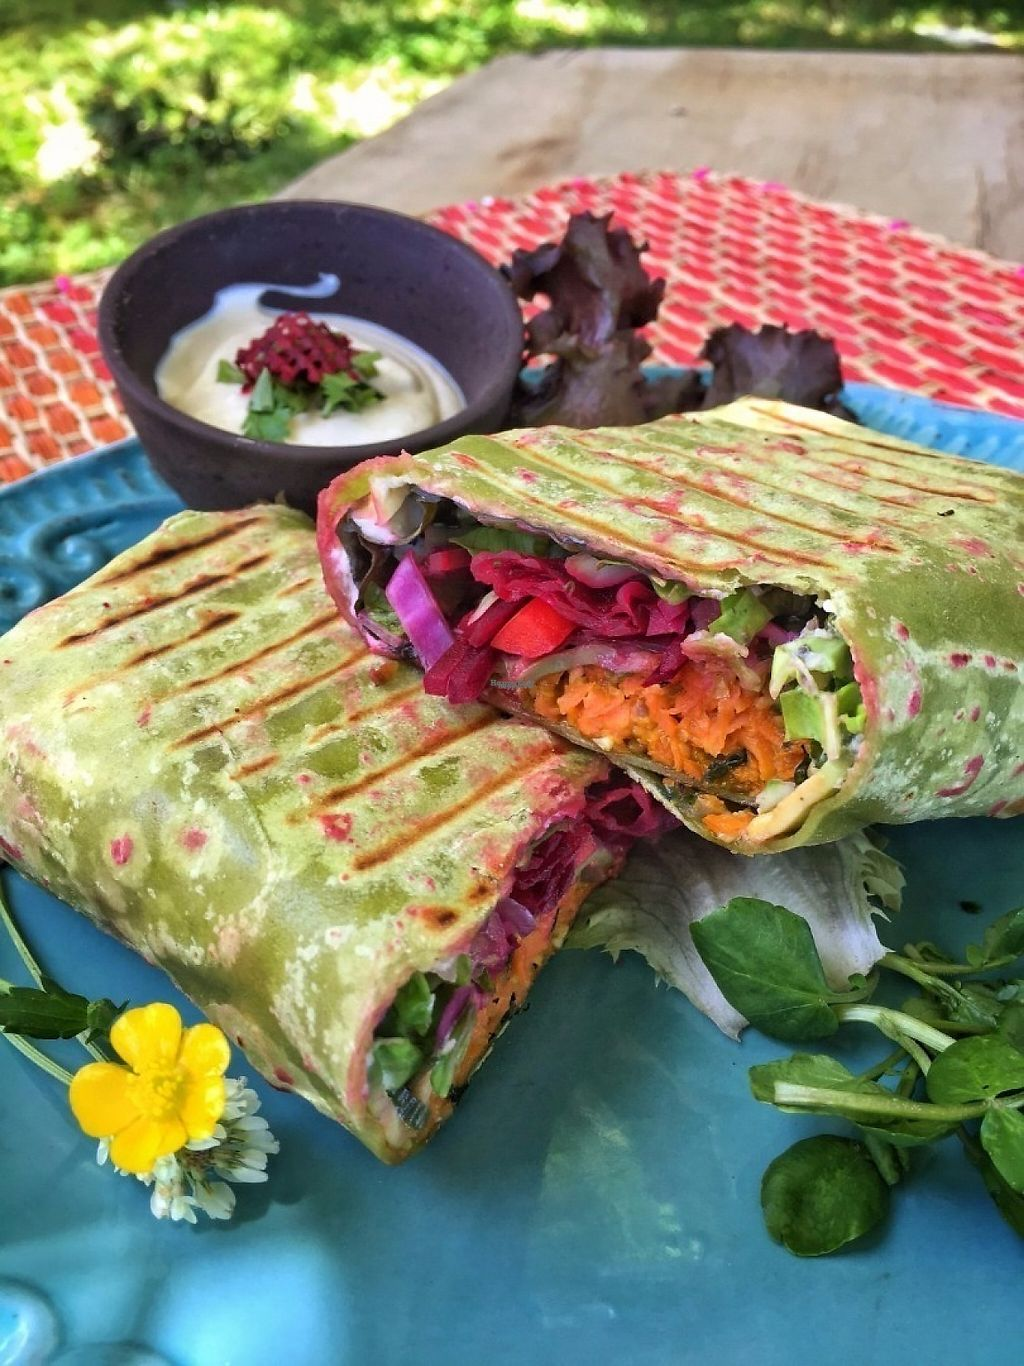 """Photo of Mundo Elefante  by <a href=""""/members/profile/jclabarca"""">jclabarca</a> <br/>Fill your belly with colors and amazing flavors... Green fajitas with carrot and peanut butter patties <br/> December 28, 2016  - <a href='/contact/abuse/image/82204/205746'>Report</a>"""